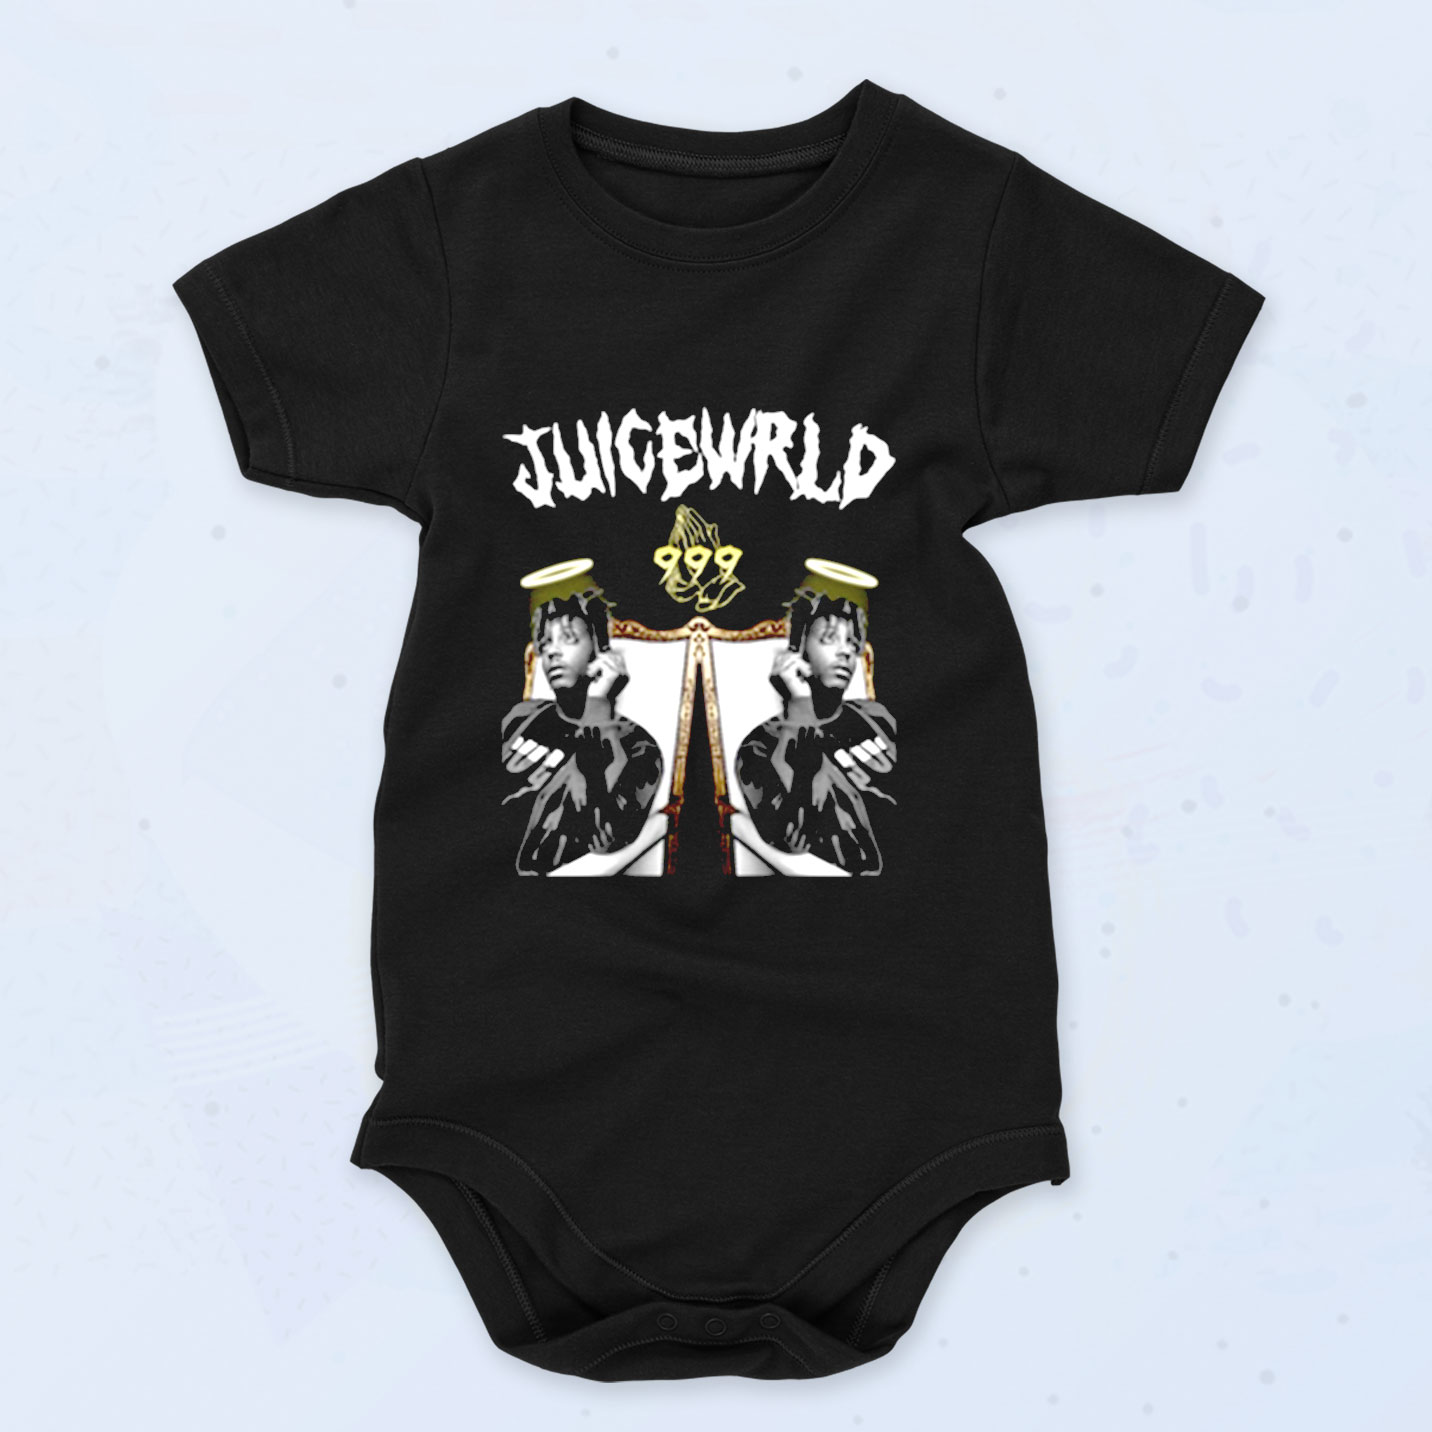 Juice Wrld 999 Angels Baby Onesies Style, Baby Clothes ...